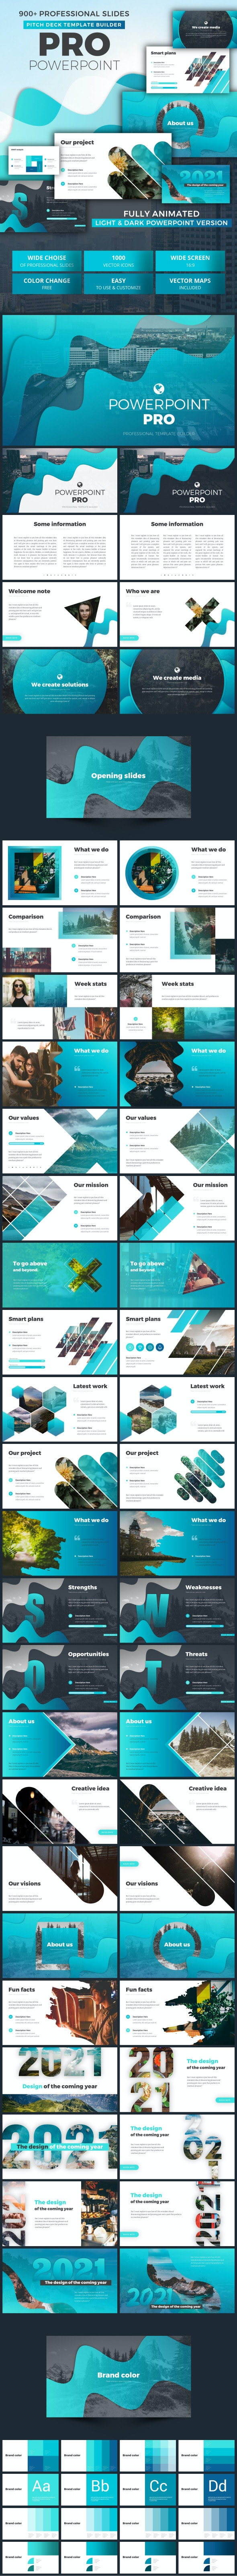 Powerpoint Business Pitch Deck - Pitch Deck PowerPoint Templates